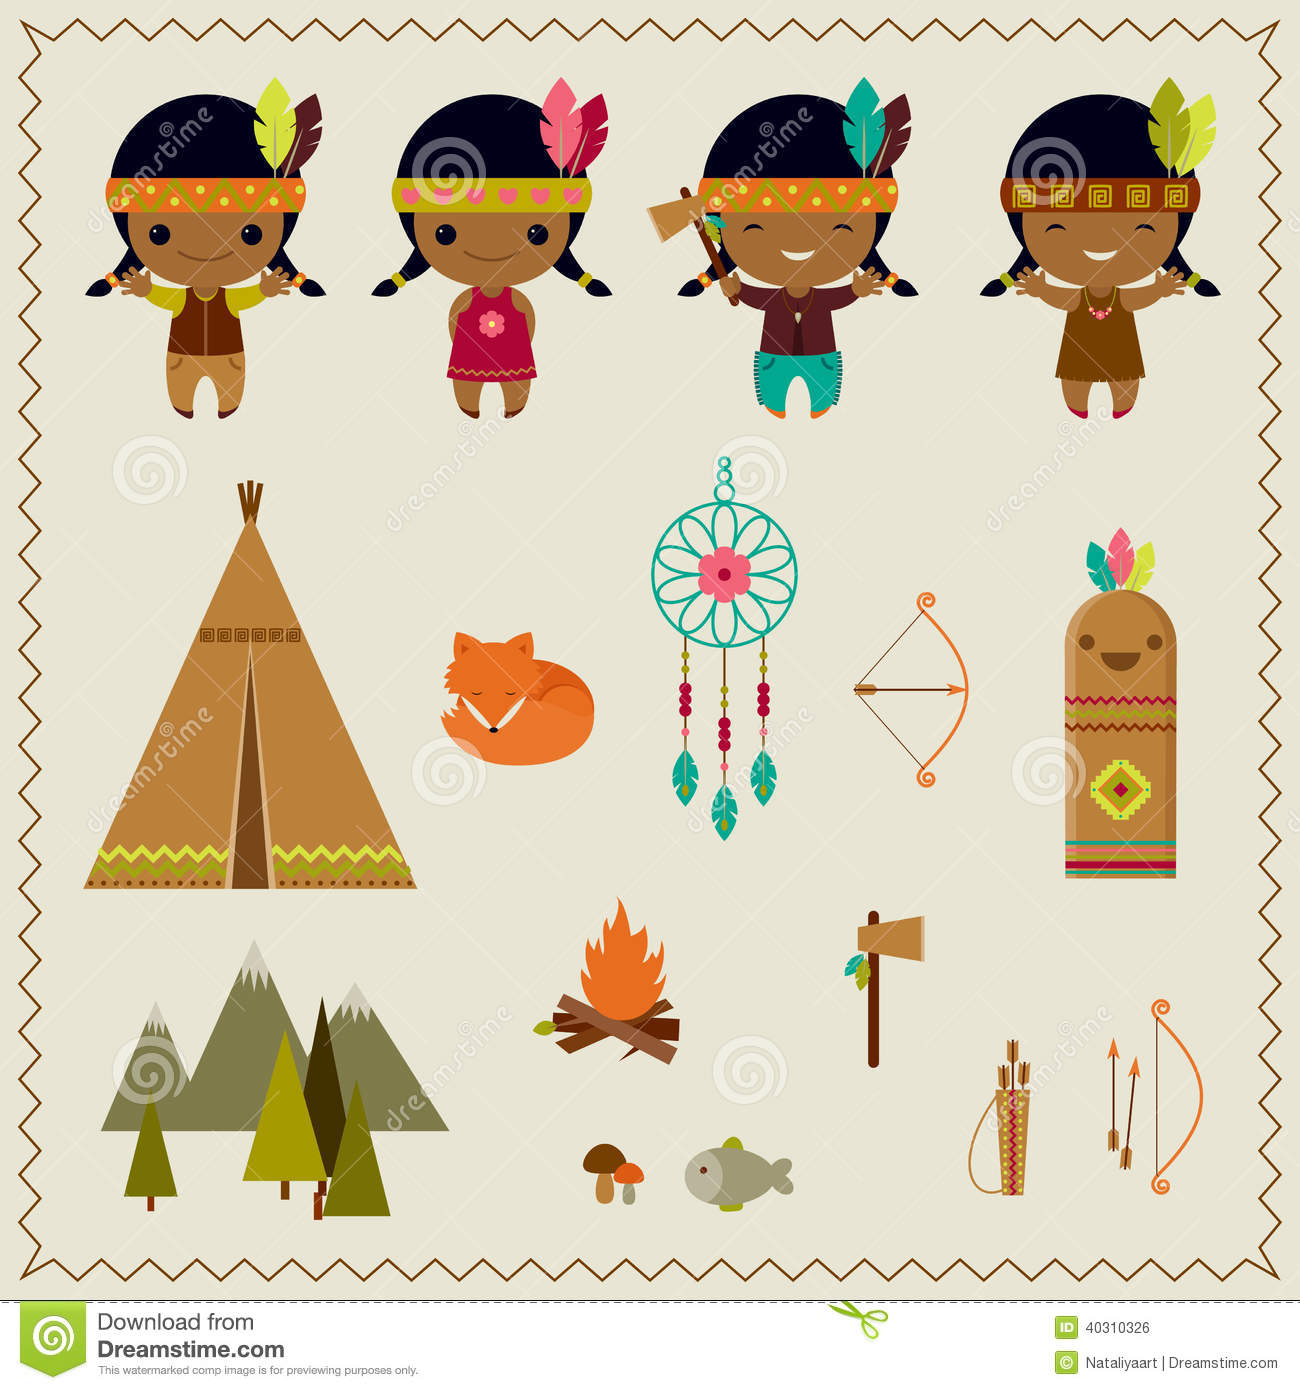 american indian clipart icons design stock vector illustration of rh dreamstime com indian clipart free indian clipart wedding